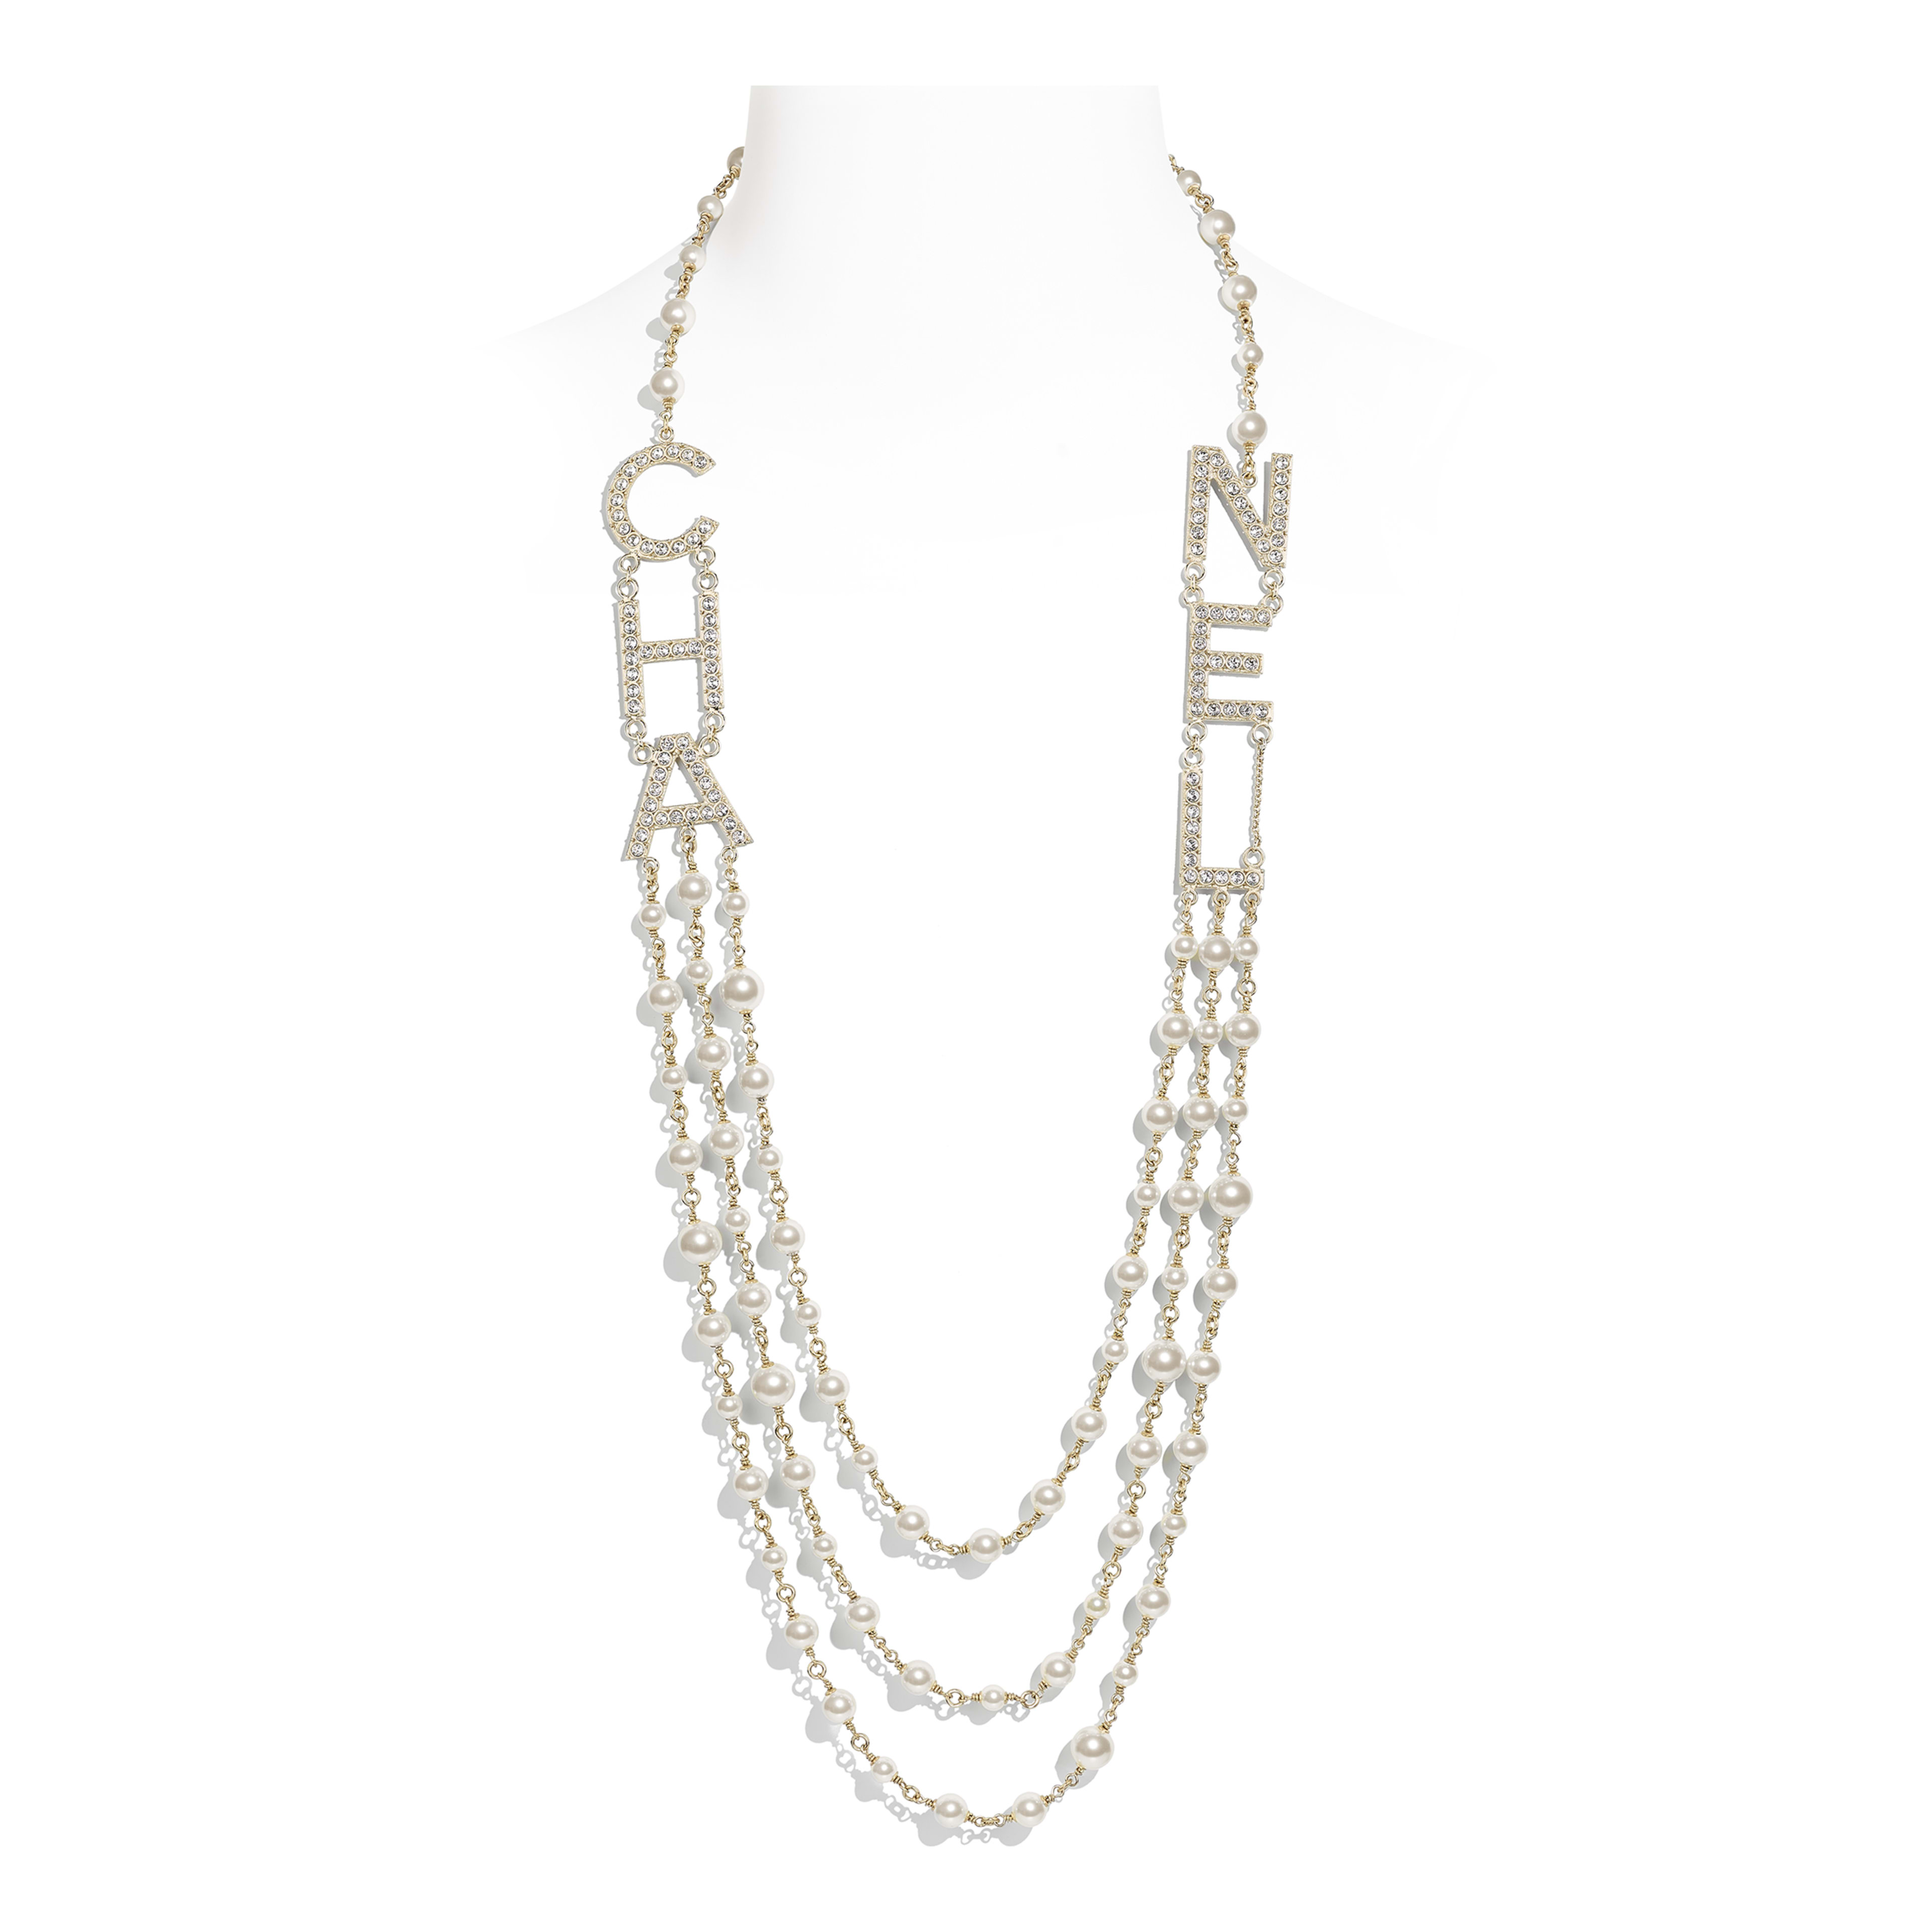 Long Necklace - Gold, Pearly White & Crystal - Metal, Glass Pearls & Strass - Default view - see full sized version